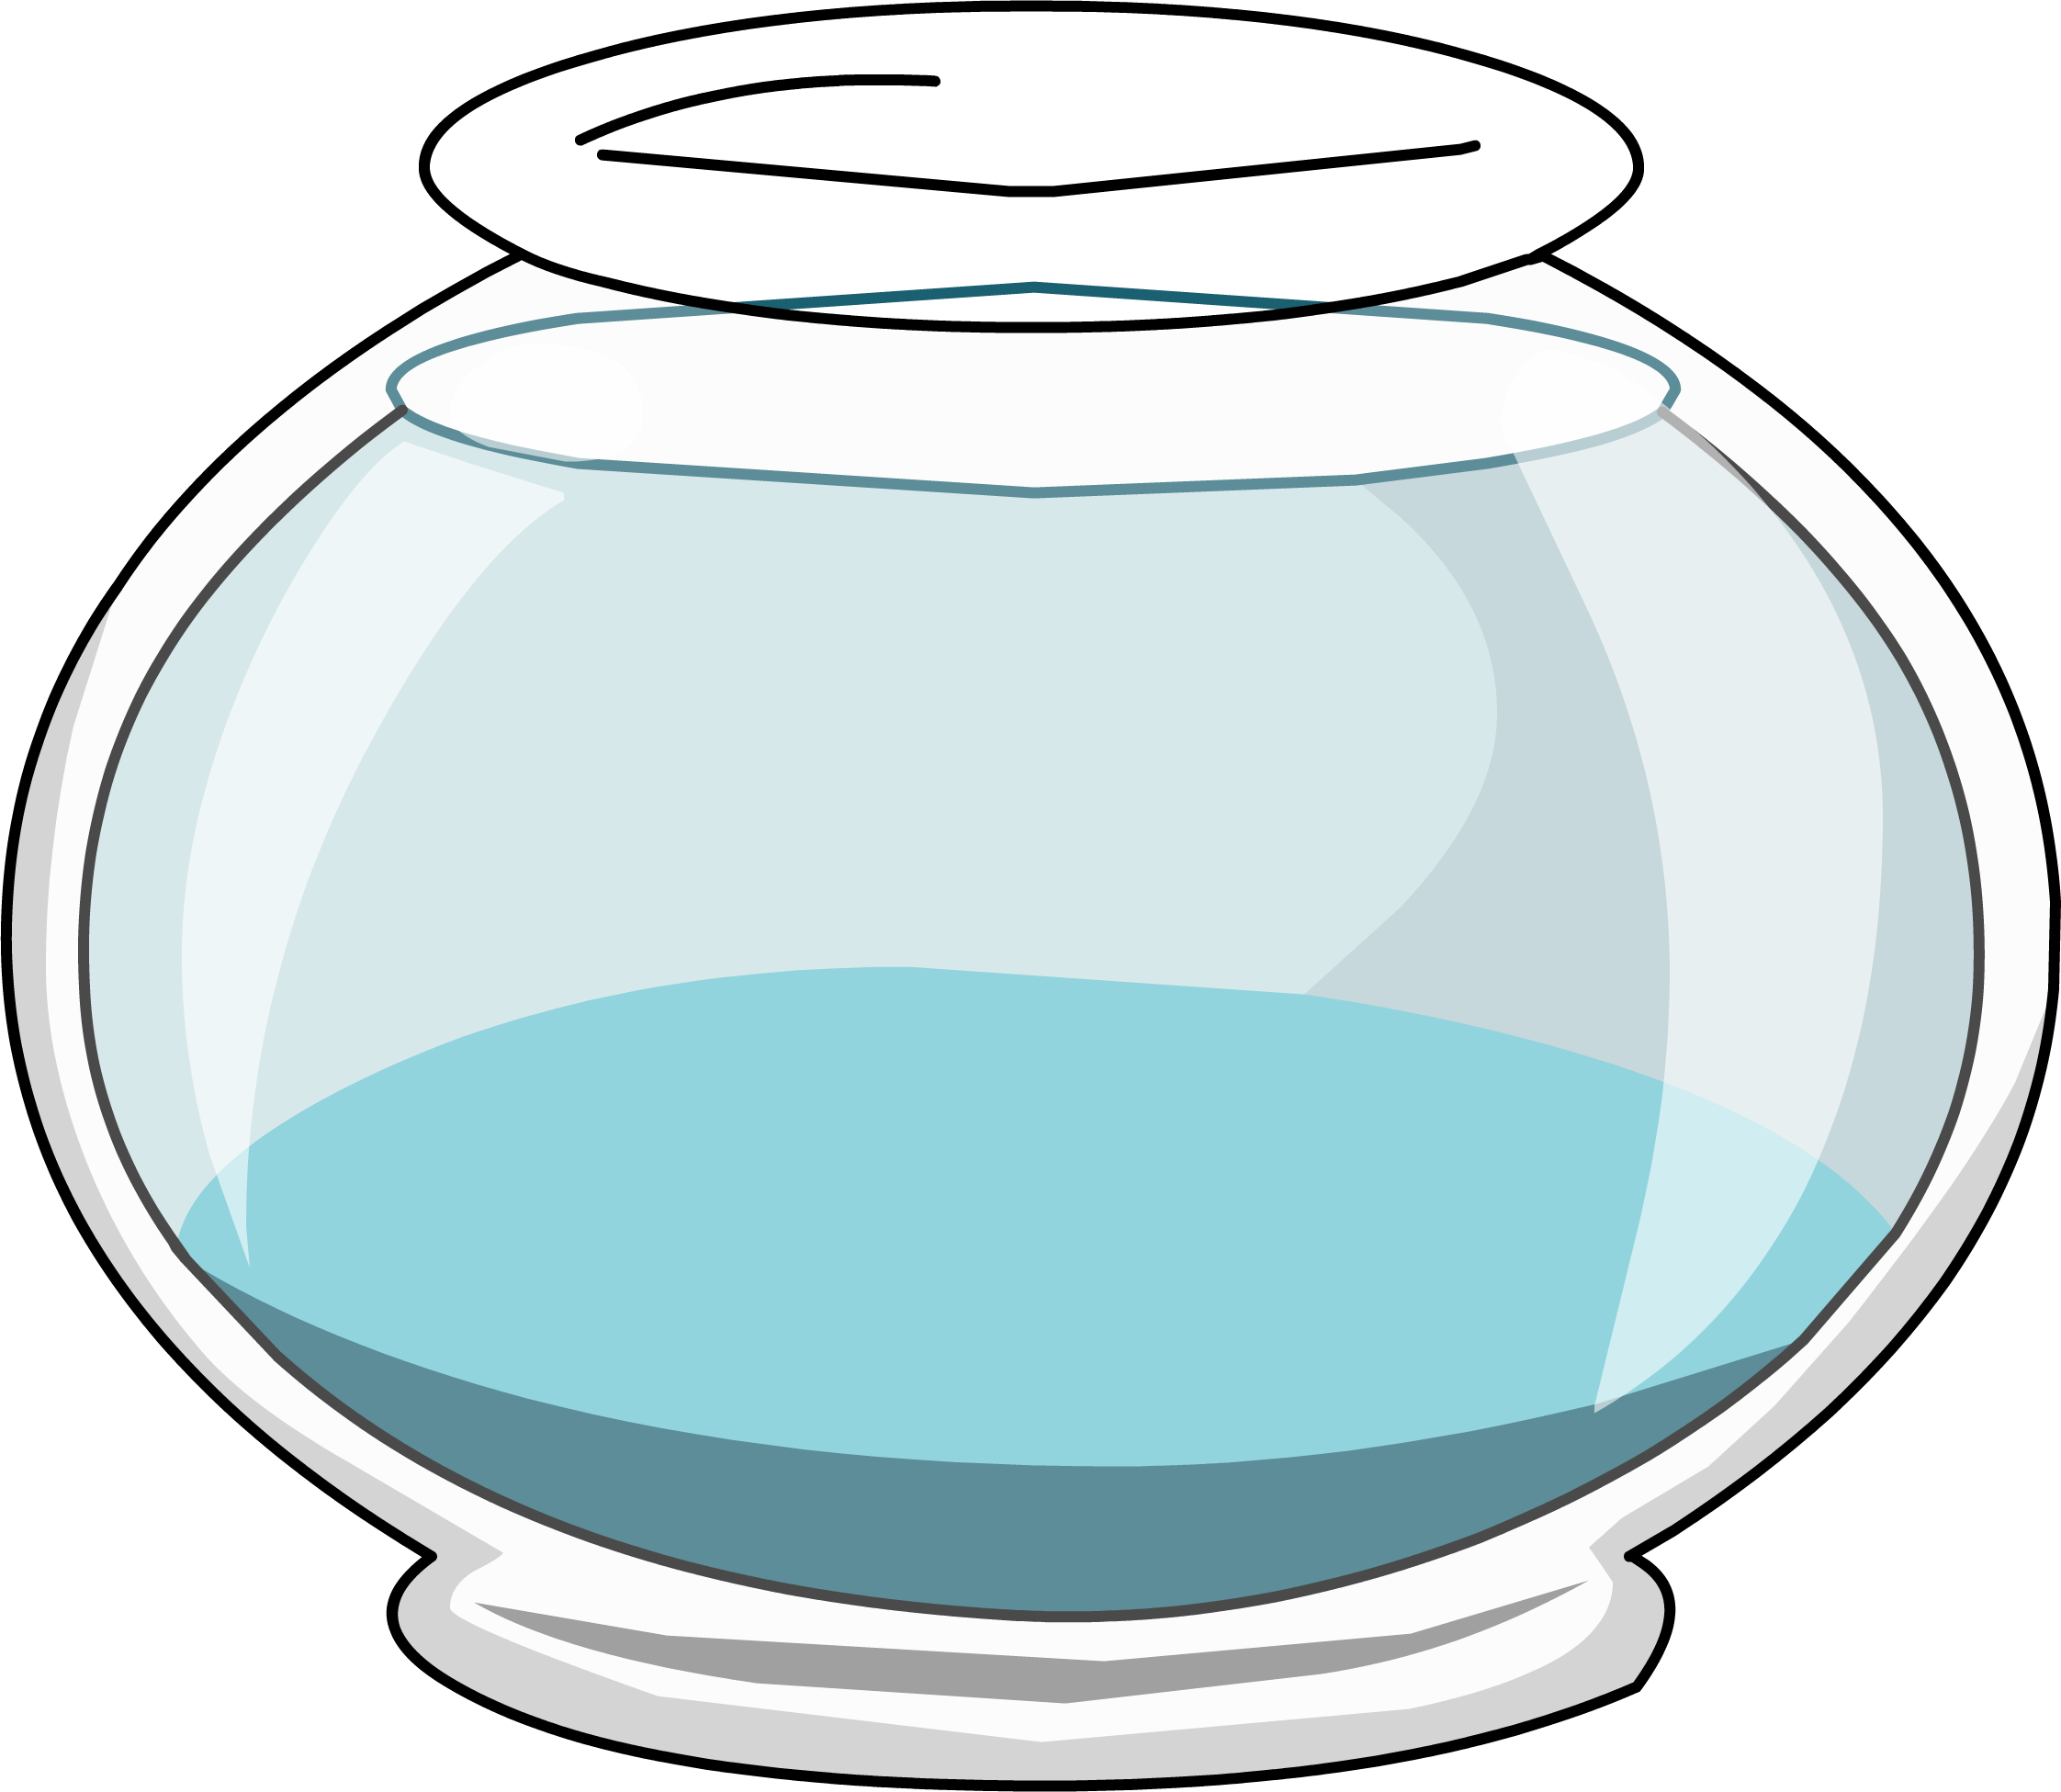 No cliparts clipartix. Fish bowl with fish clipart